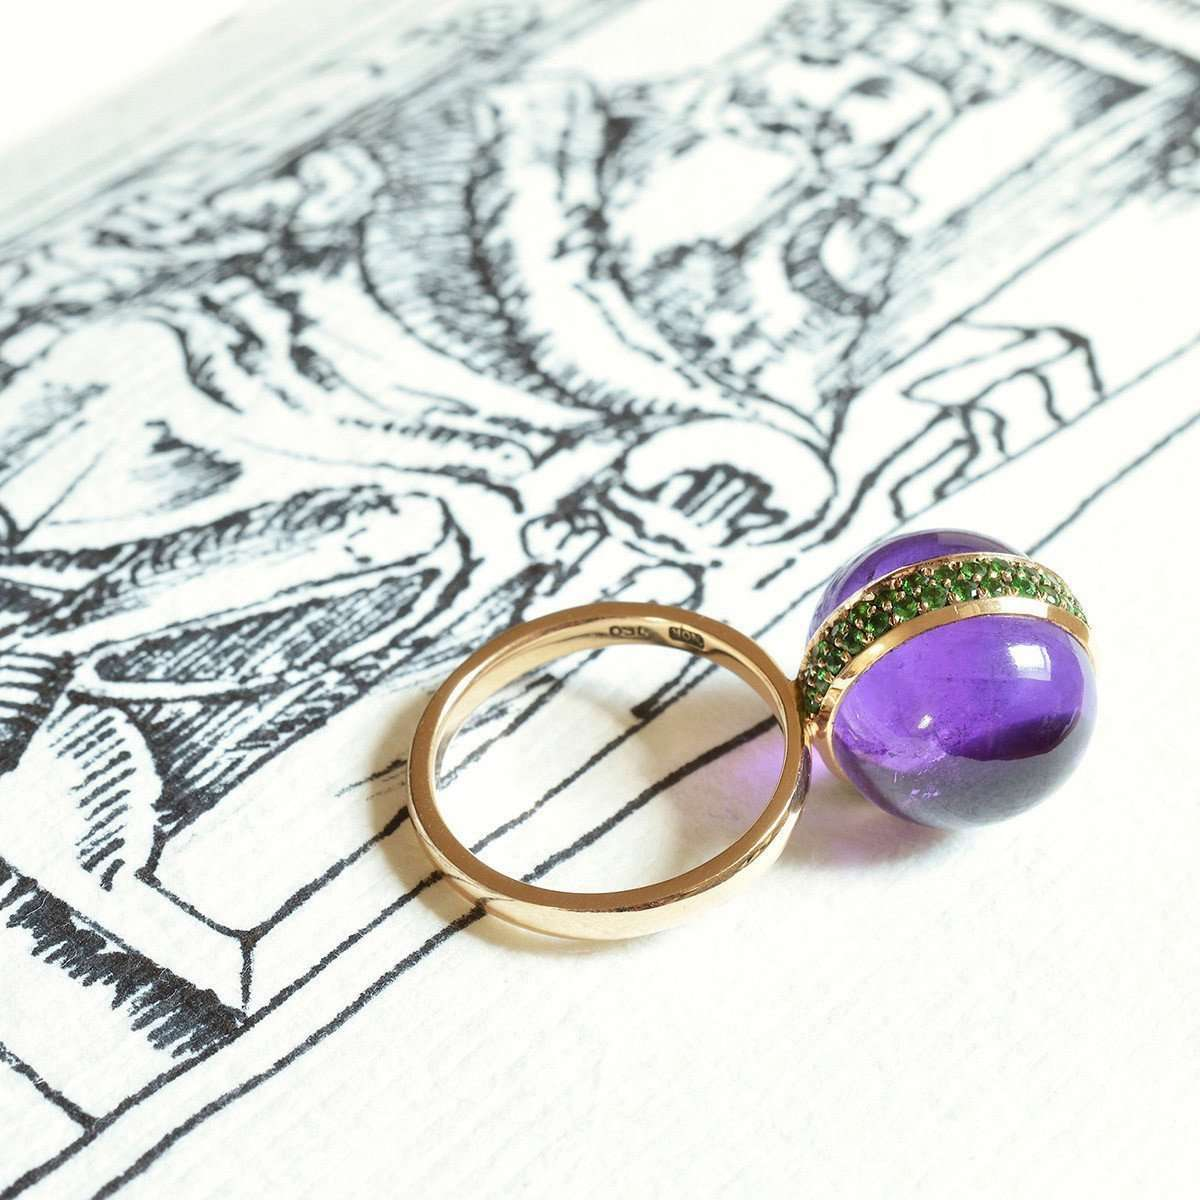 Globe Amethyst Cocktail Ring-Nigel OReilly Goldsmith and Jewellery Design-JewelStreet US